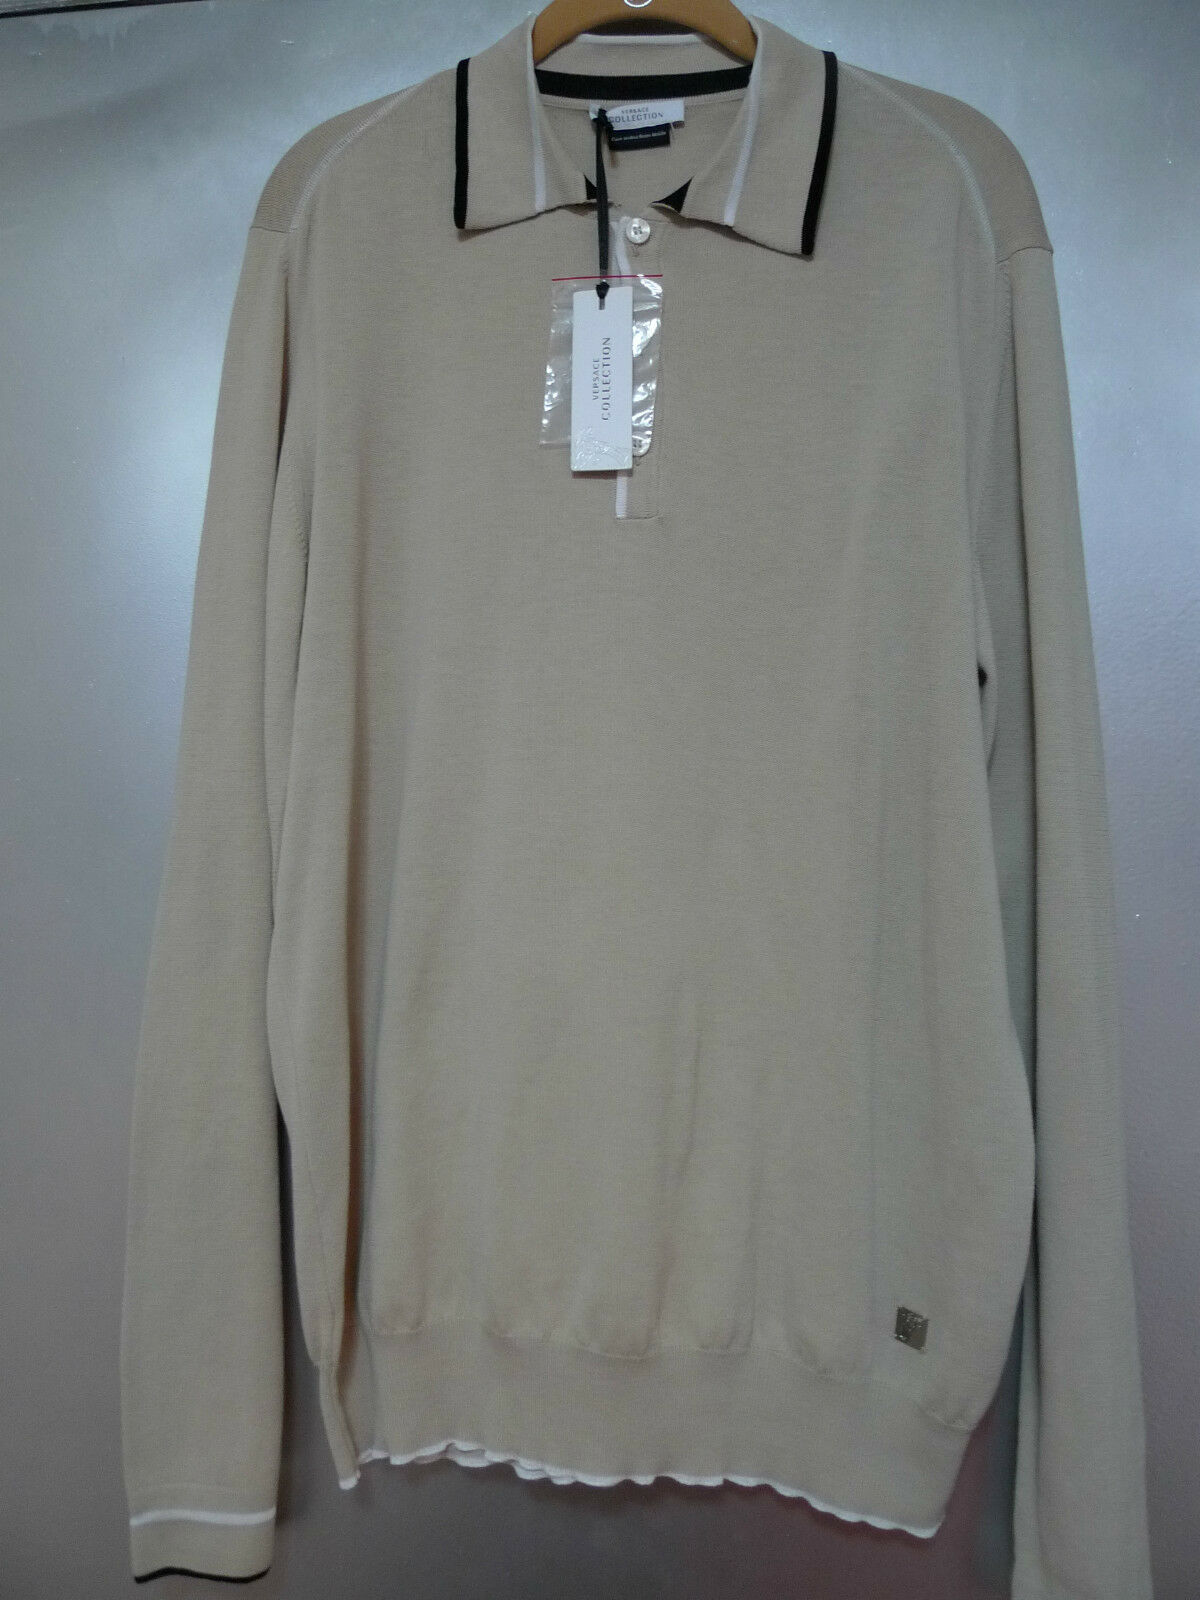 775. VERSACE COTTON BEIGE Herren POLO SWEATER ITALY SIZE XL